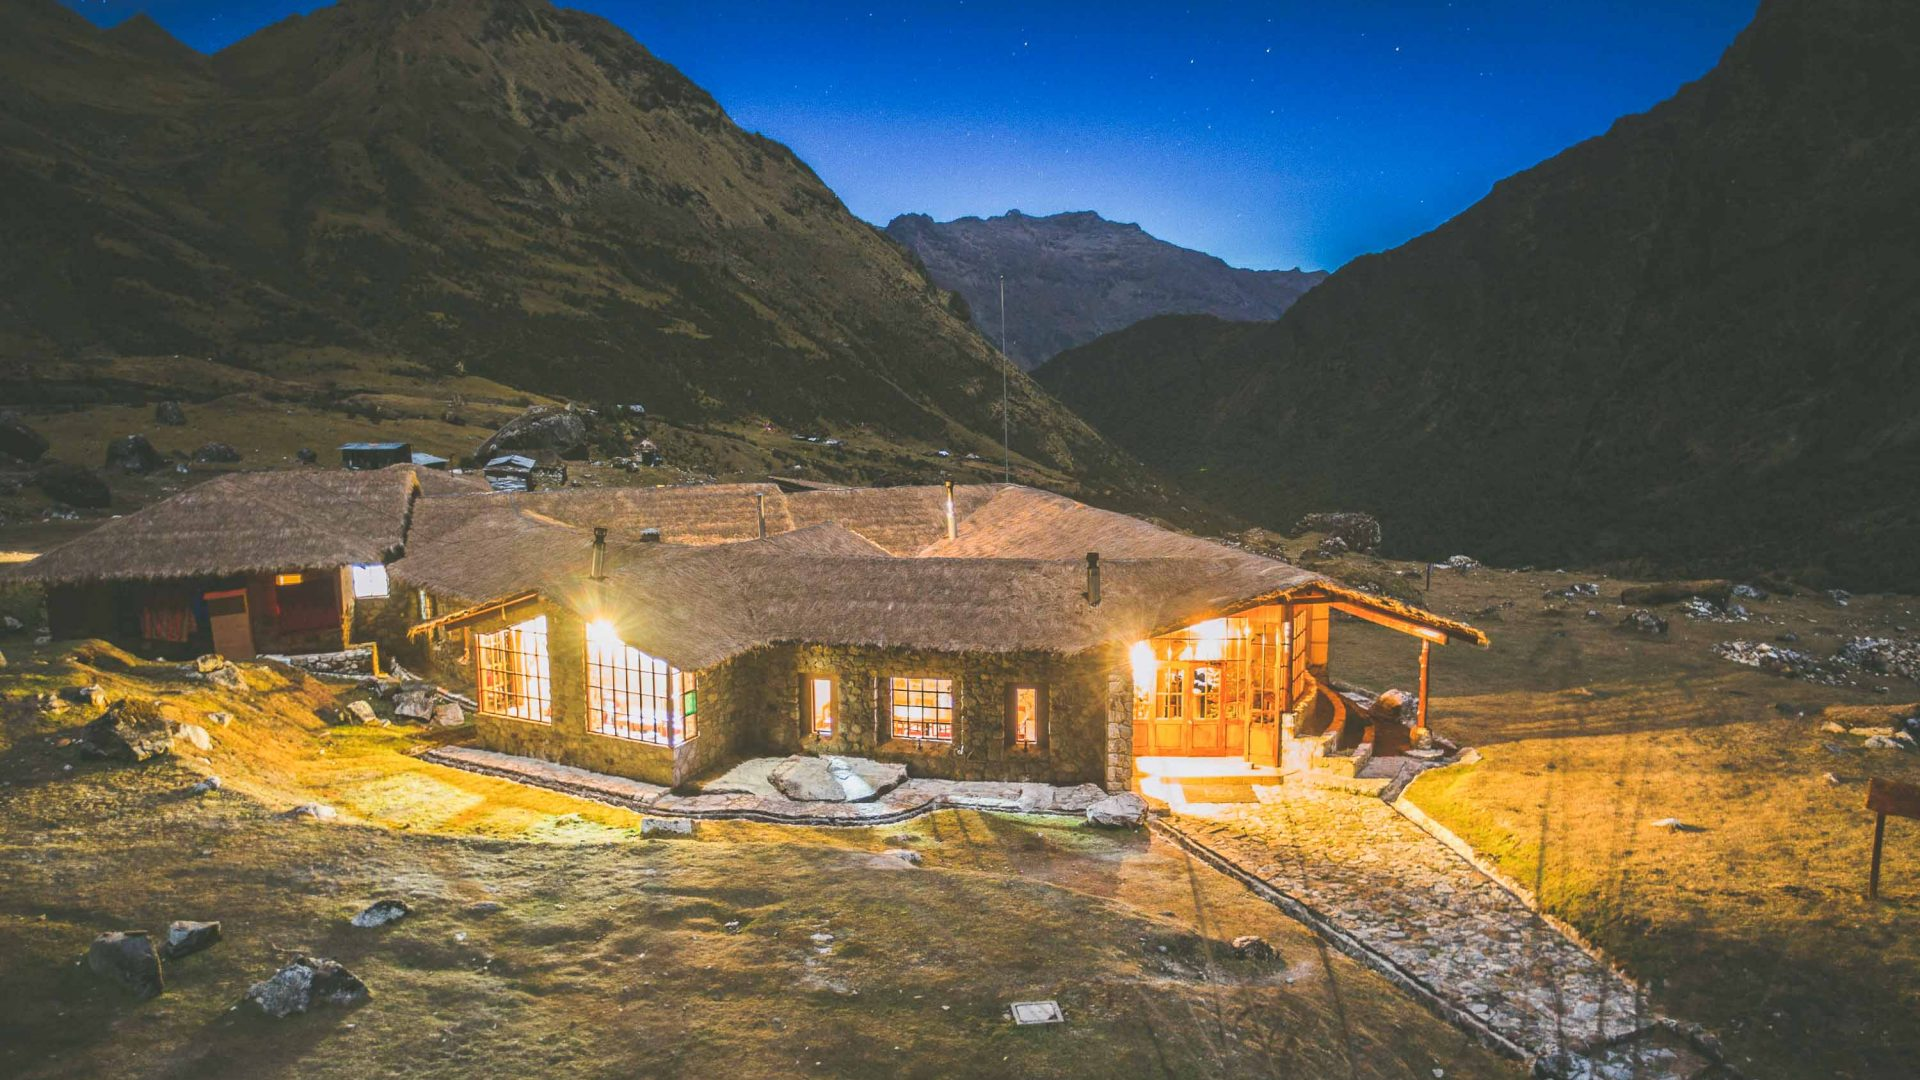 Wayra Lodge, one of the lodges that are part of Mountain Lodges of Peru.